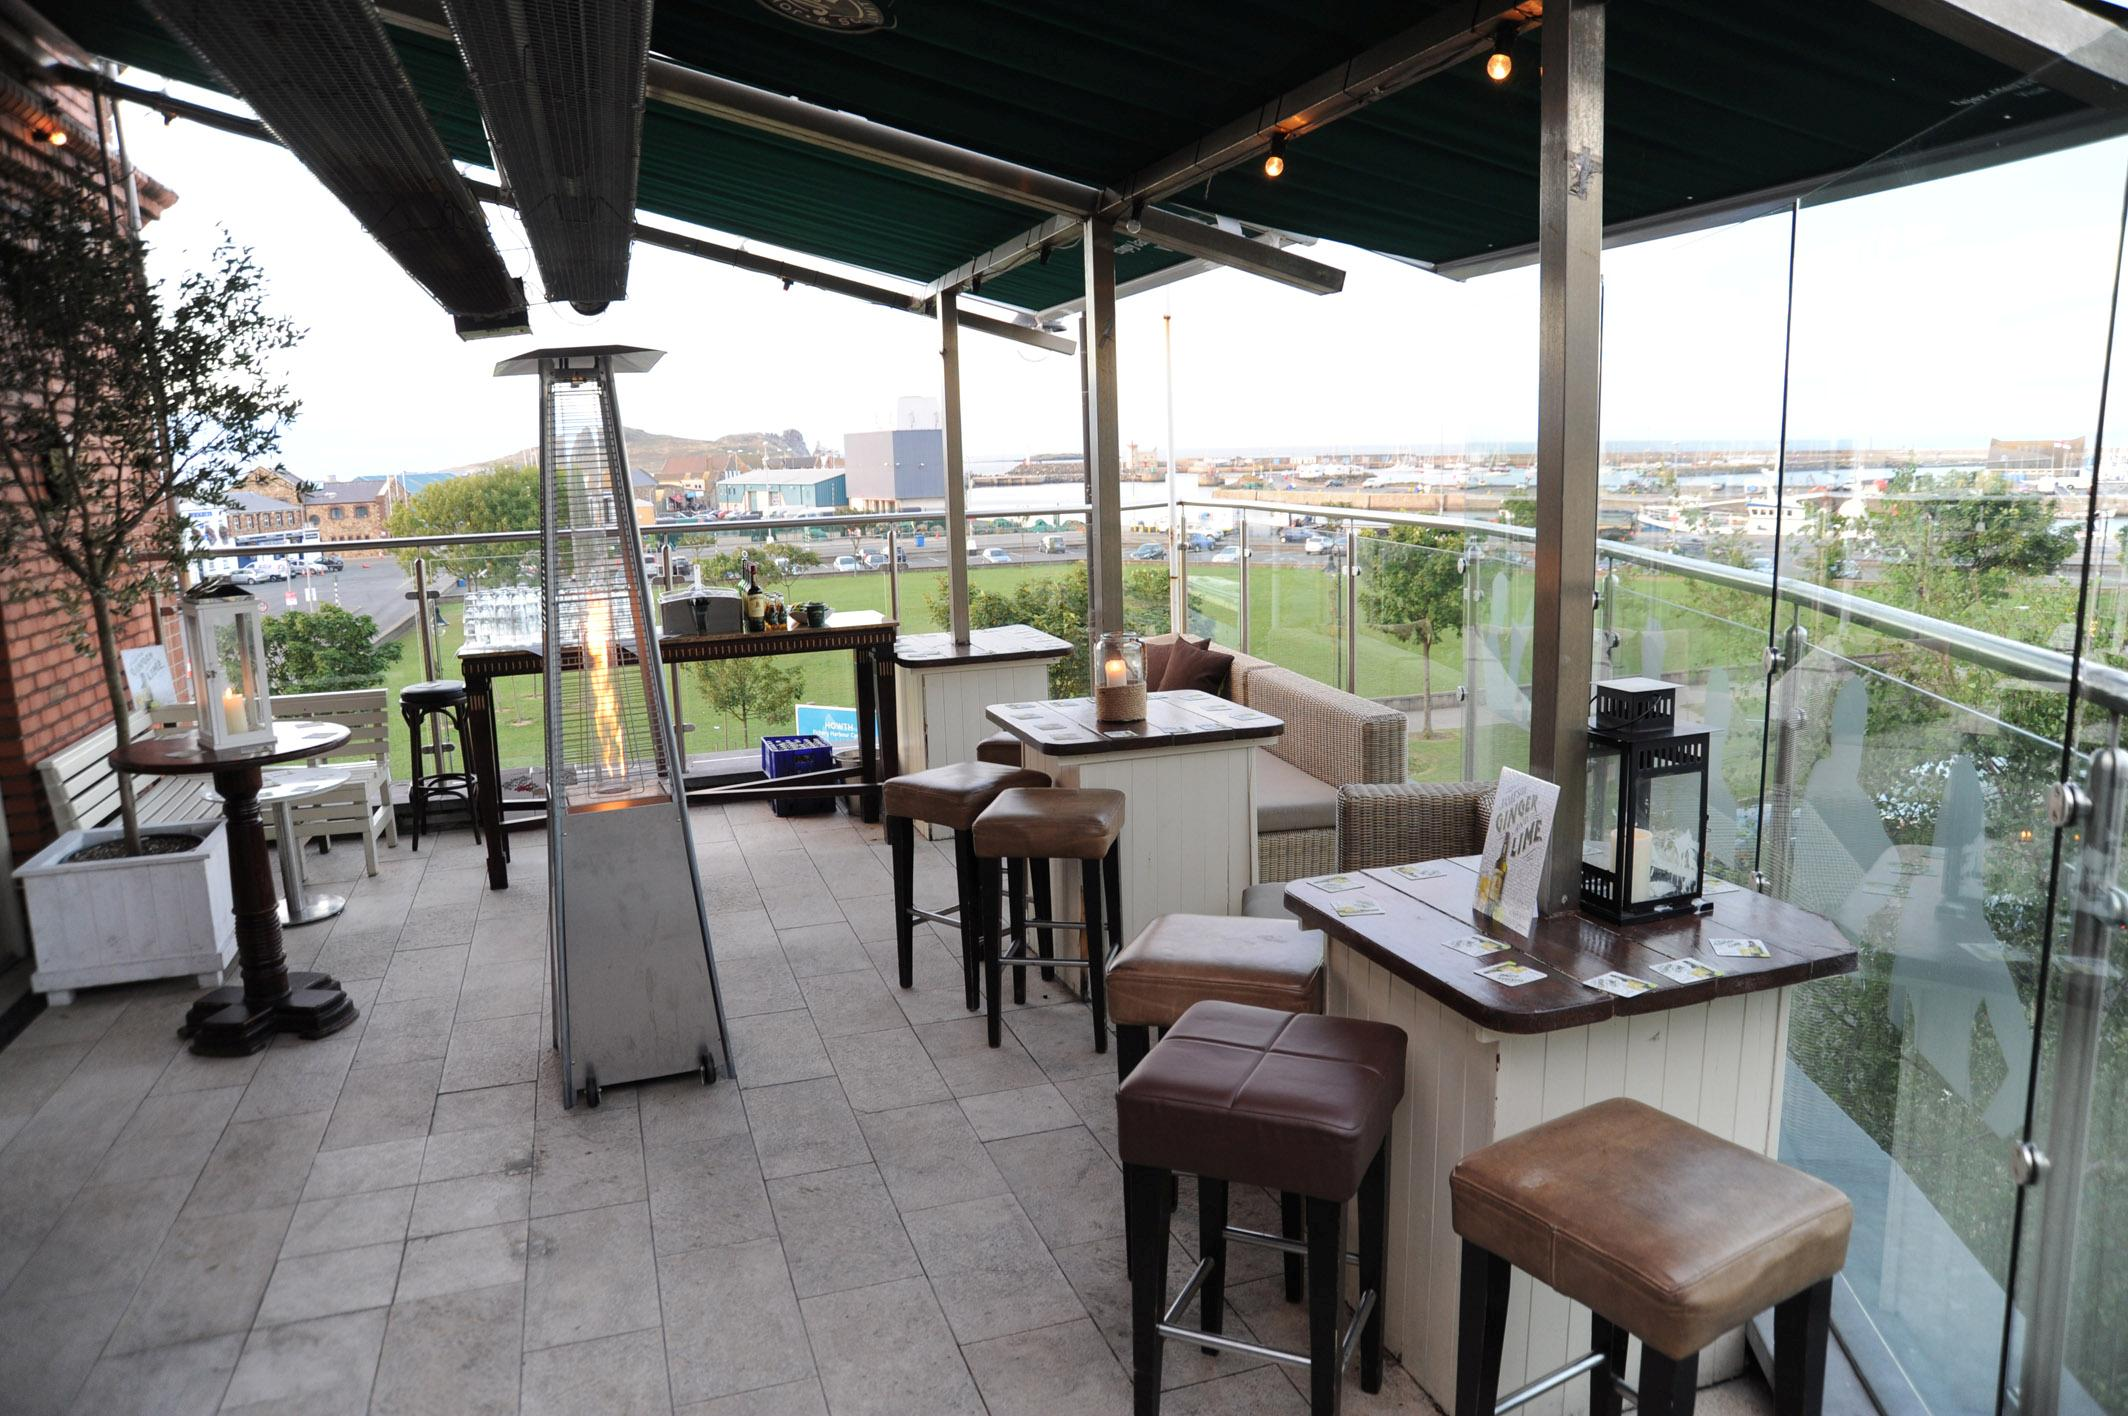 Wrights findlater howth caf bar restaurant sky bar for Terrace bar menu